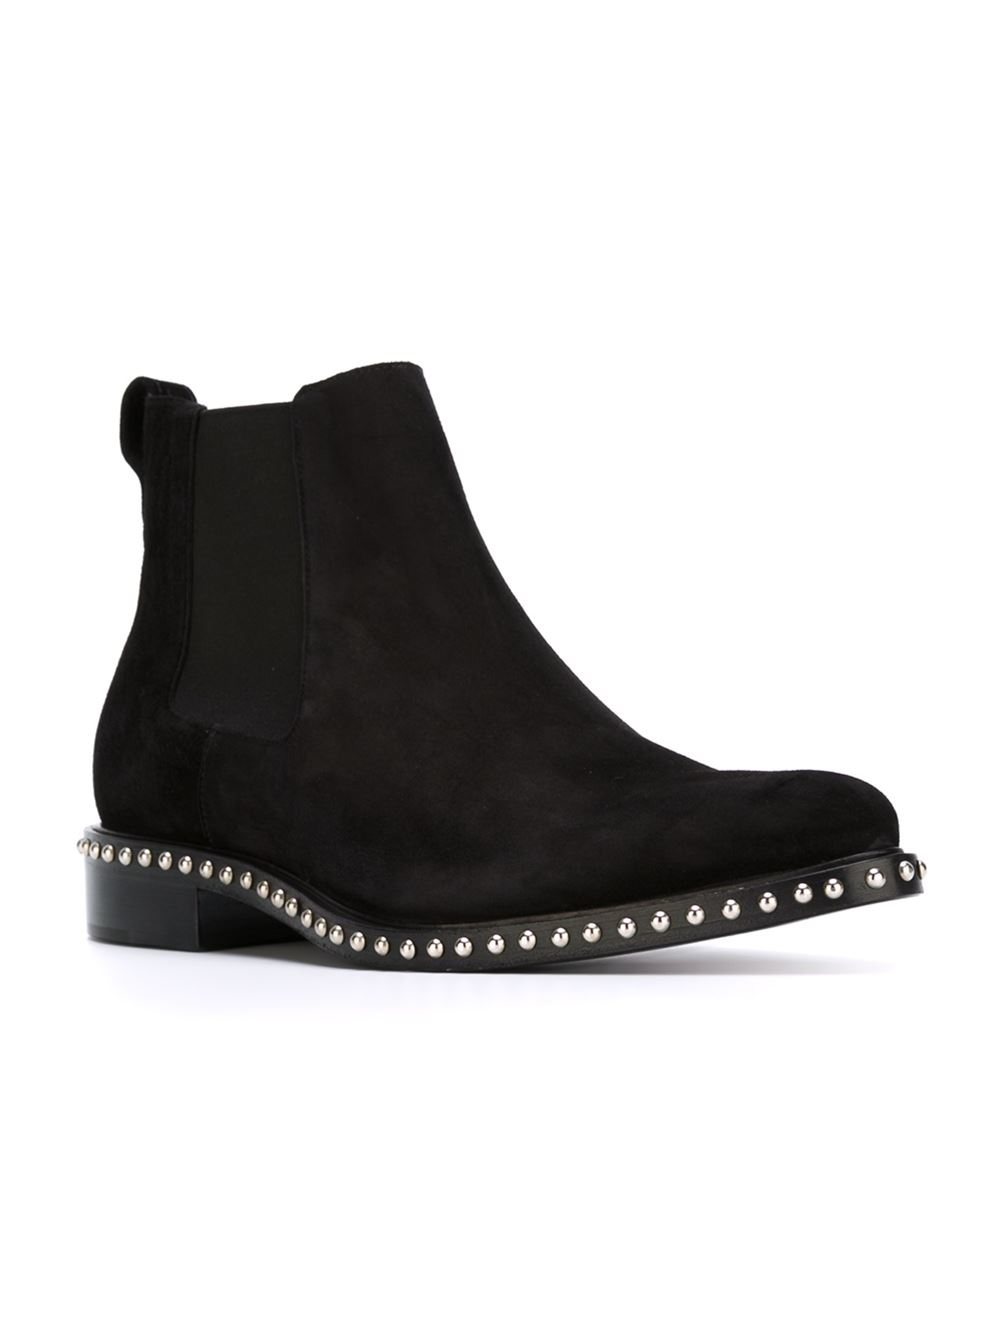 Lyst Givenchy Studded Chelsea Boots In Black For Men